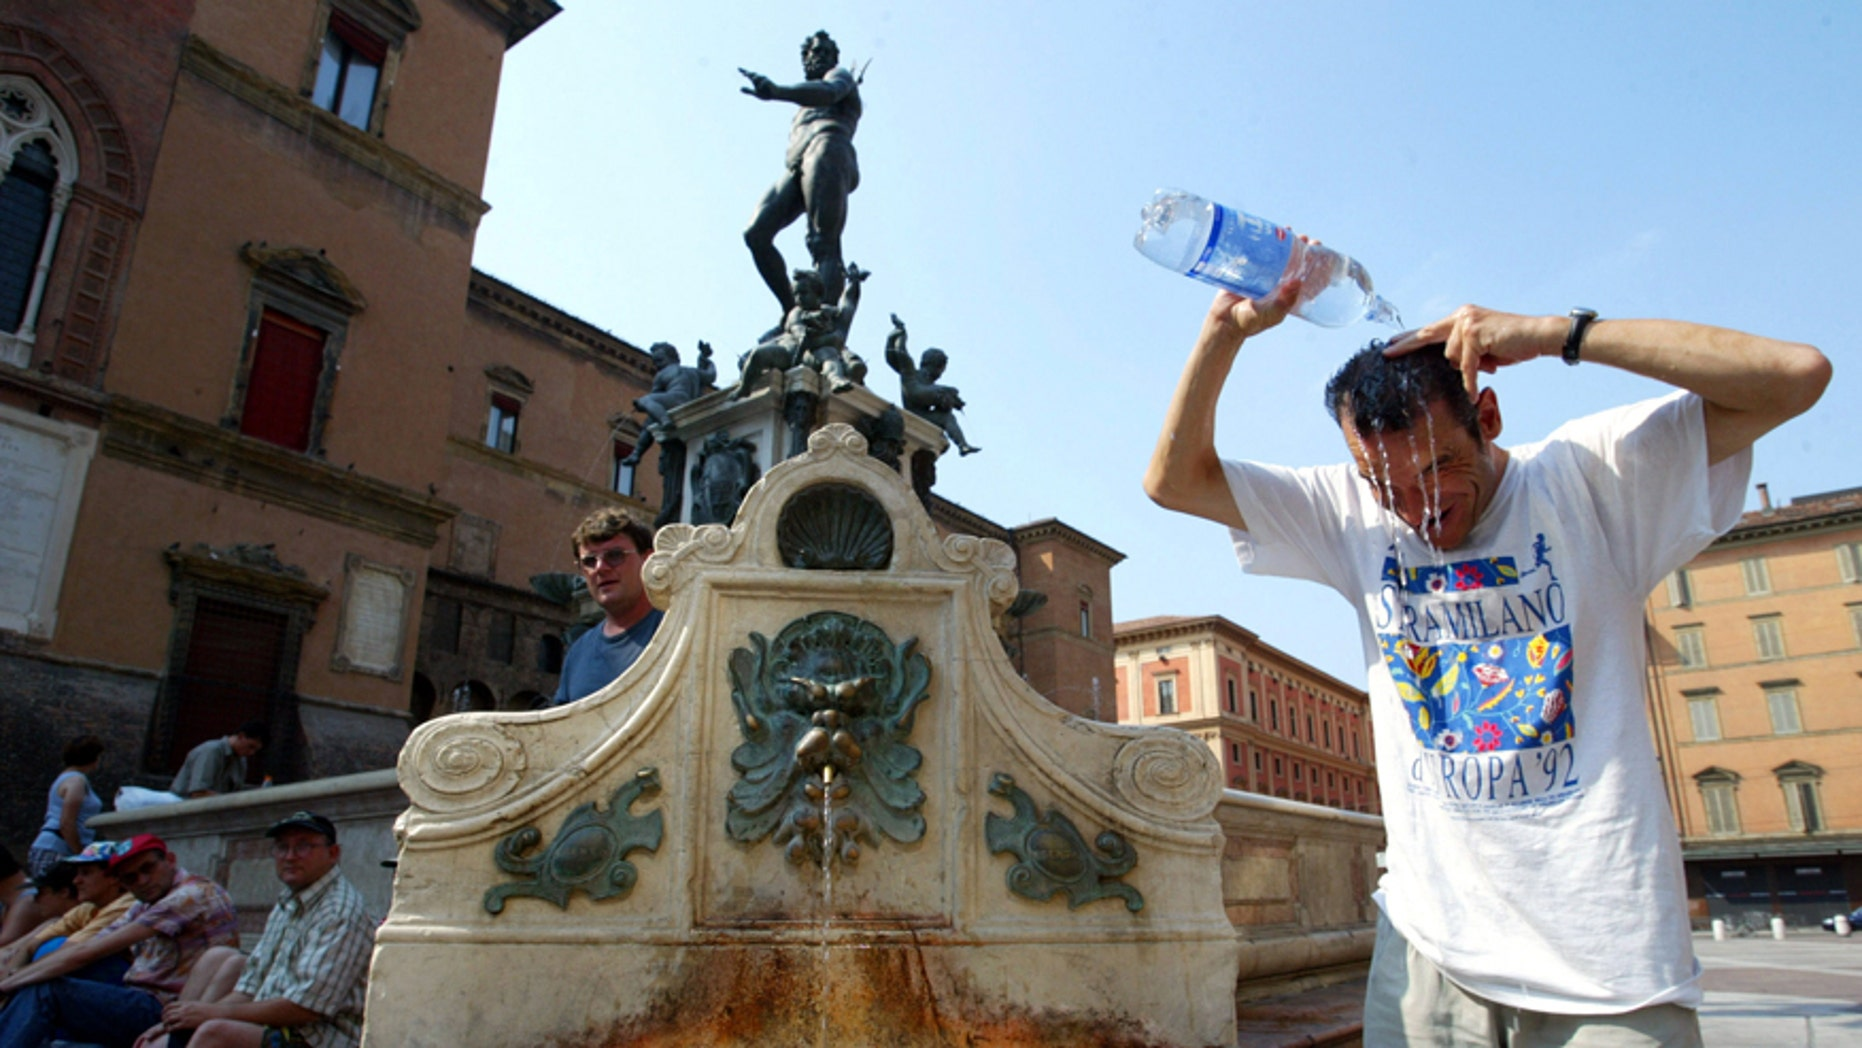 File photo - A tourist refreshes himself in front of the famous Neptune fountain in Bologna, central Italy, August 8, 2003. (Reuters)